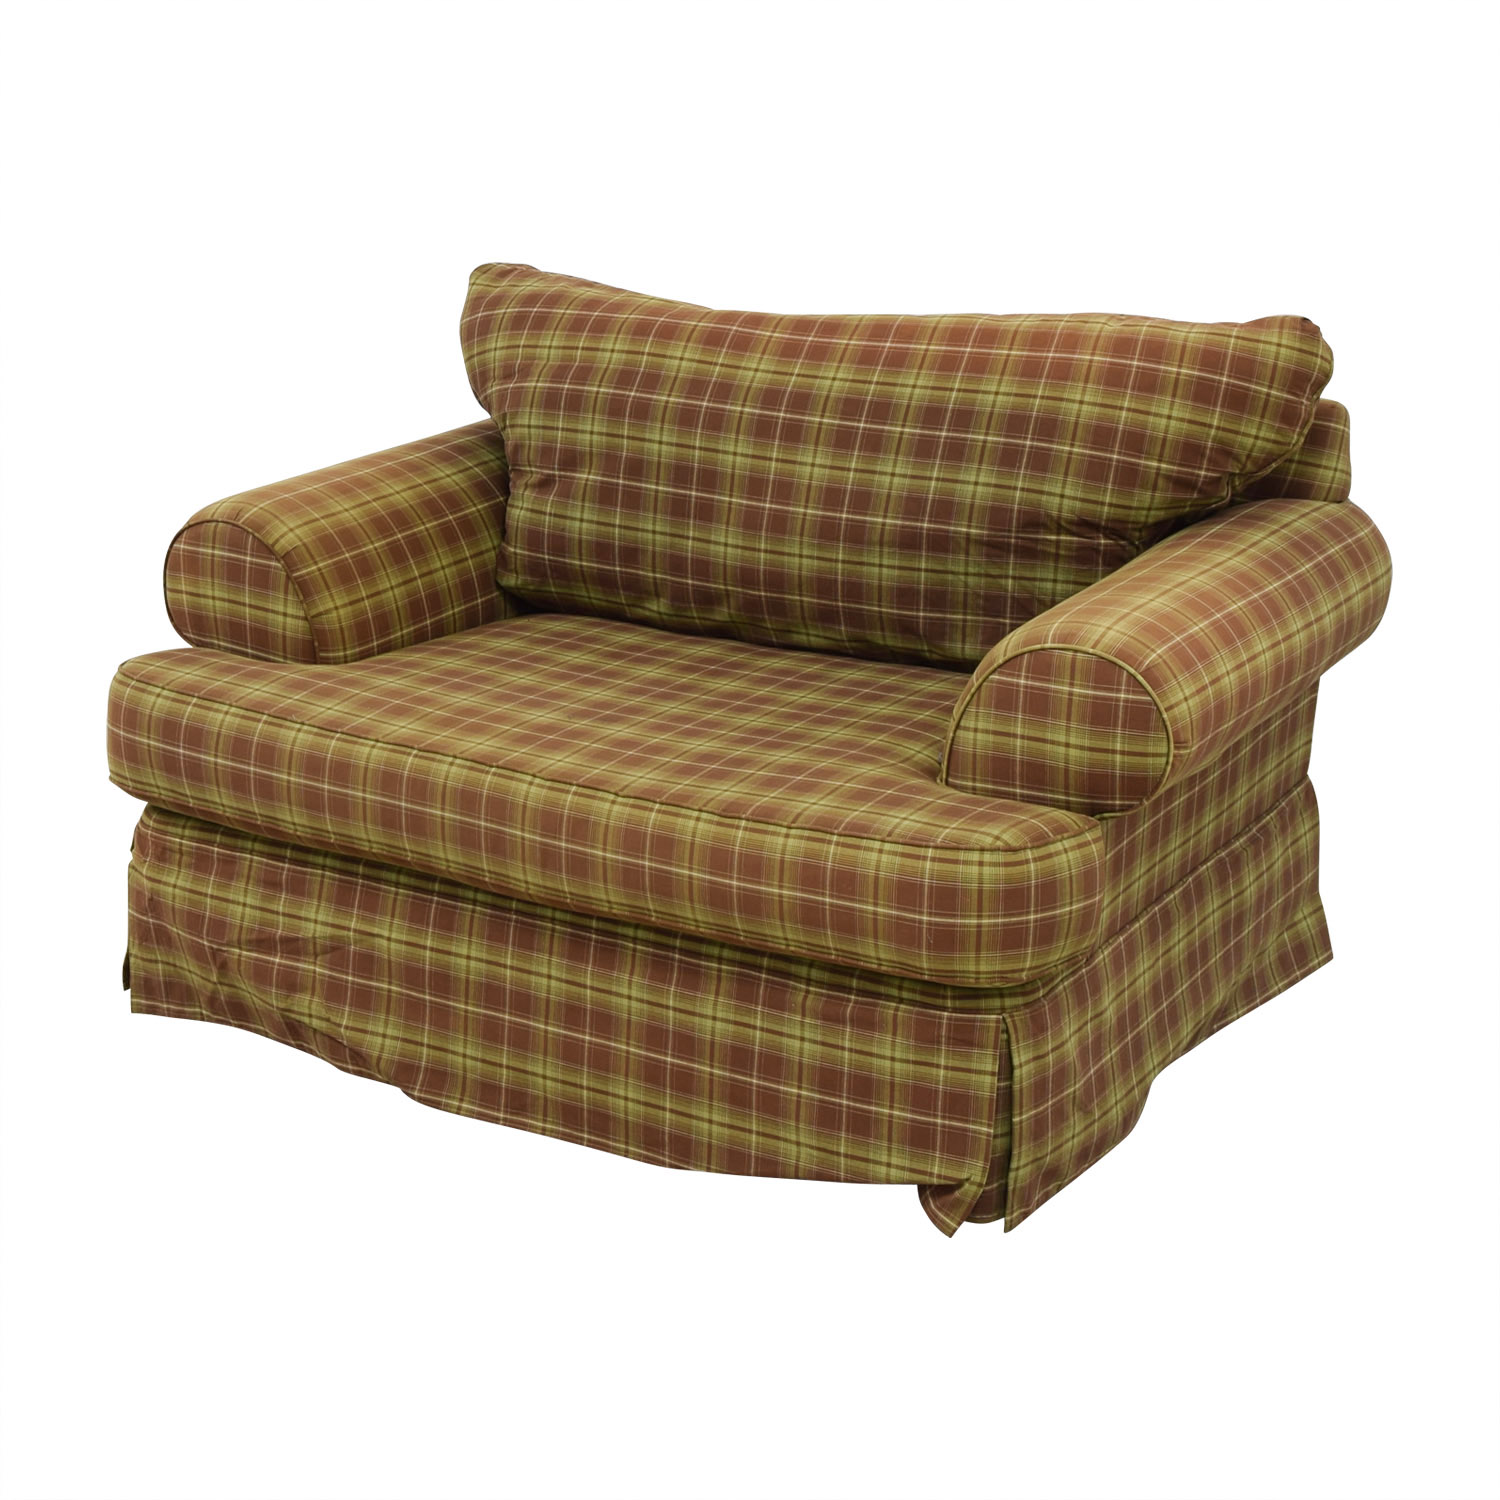 90 Off Klaussner Klaussner Green And Beige Plaid Loveseat Sofas